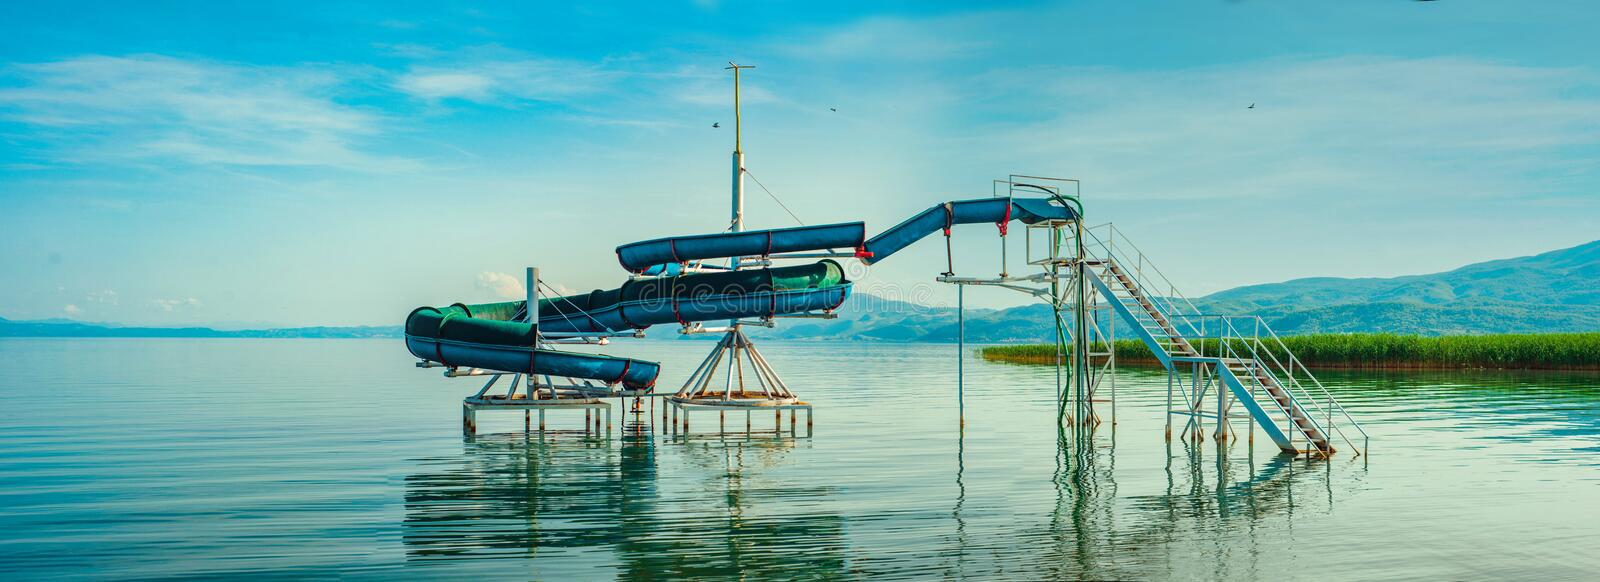 North macedonia. Ohrid. Water slide in water of ohrid lake color.  stock photography